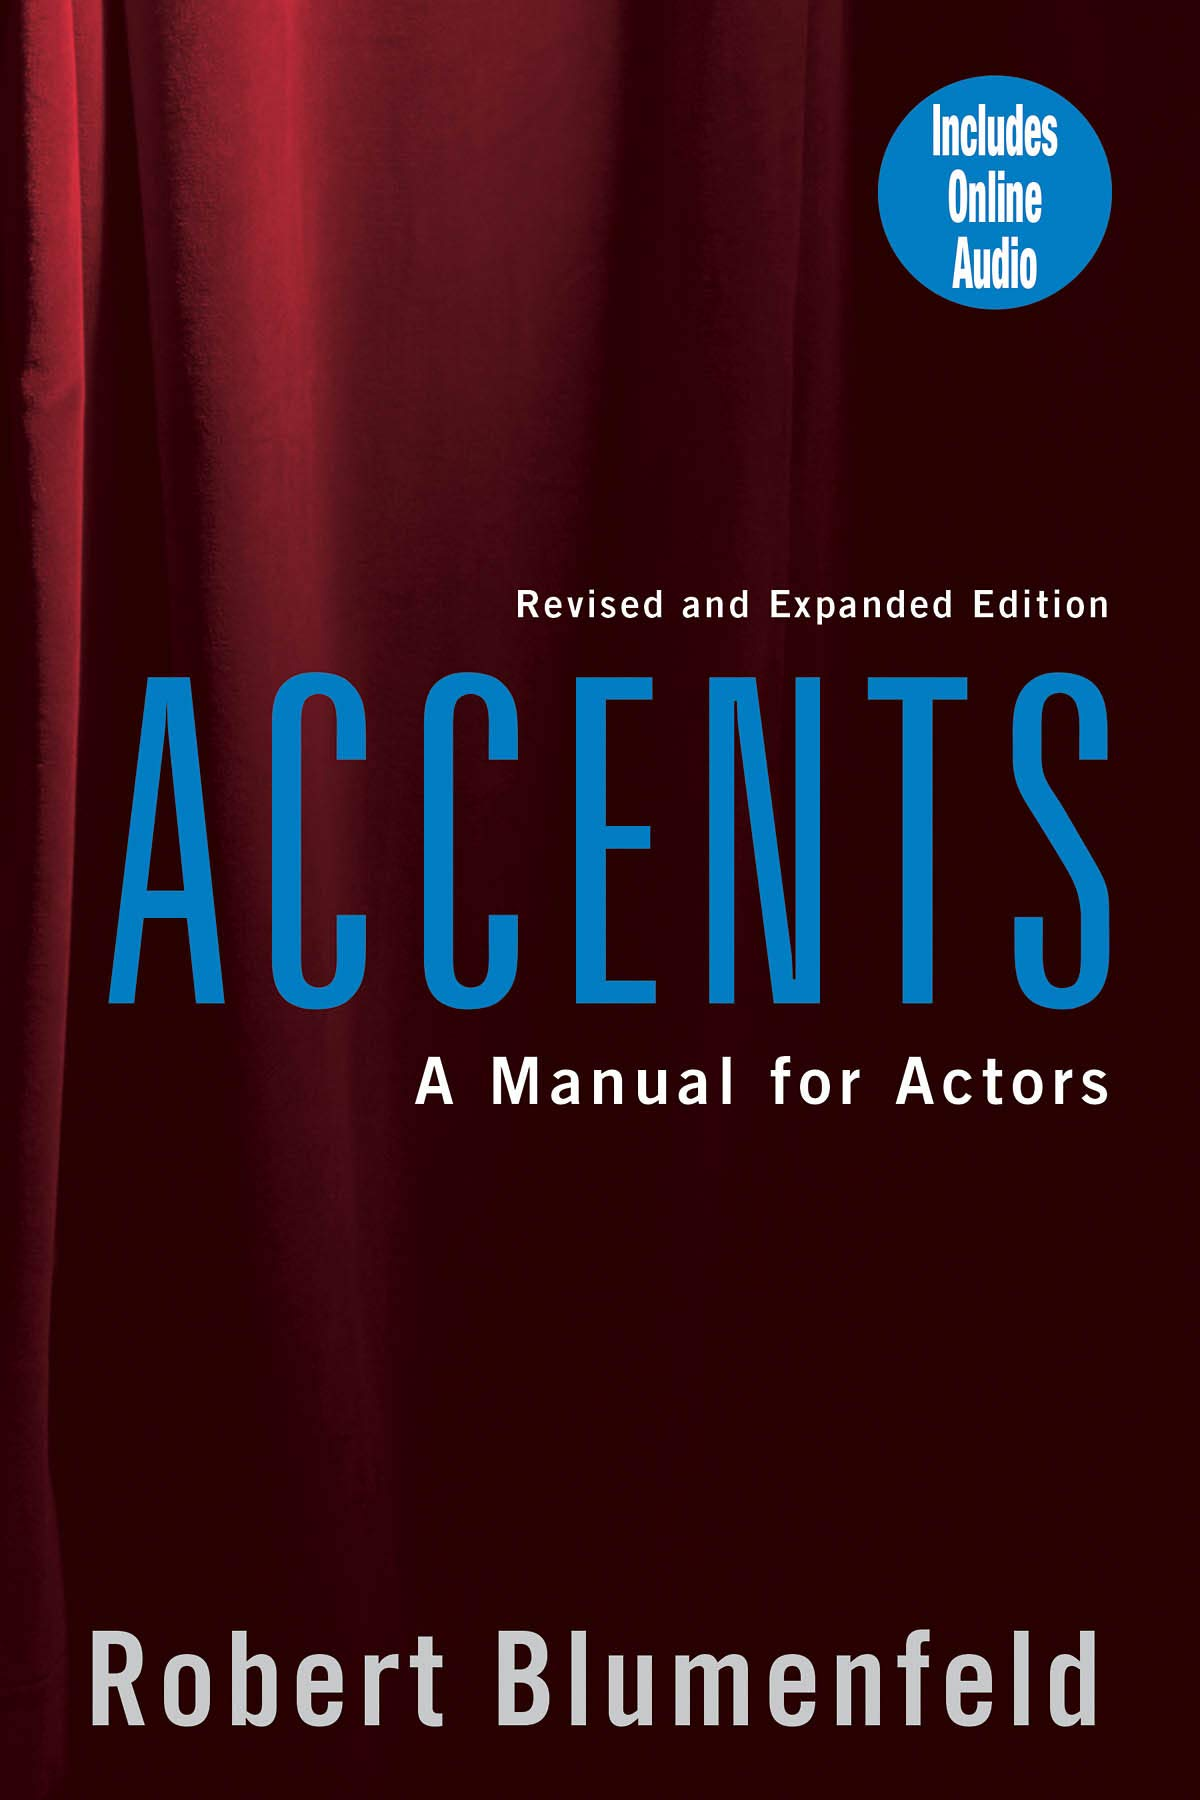 Accents: A Manual for Actors- Revised and Expanded Edition